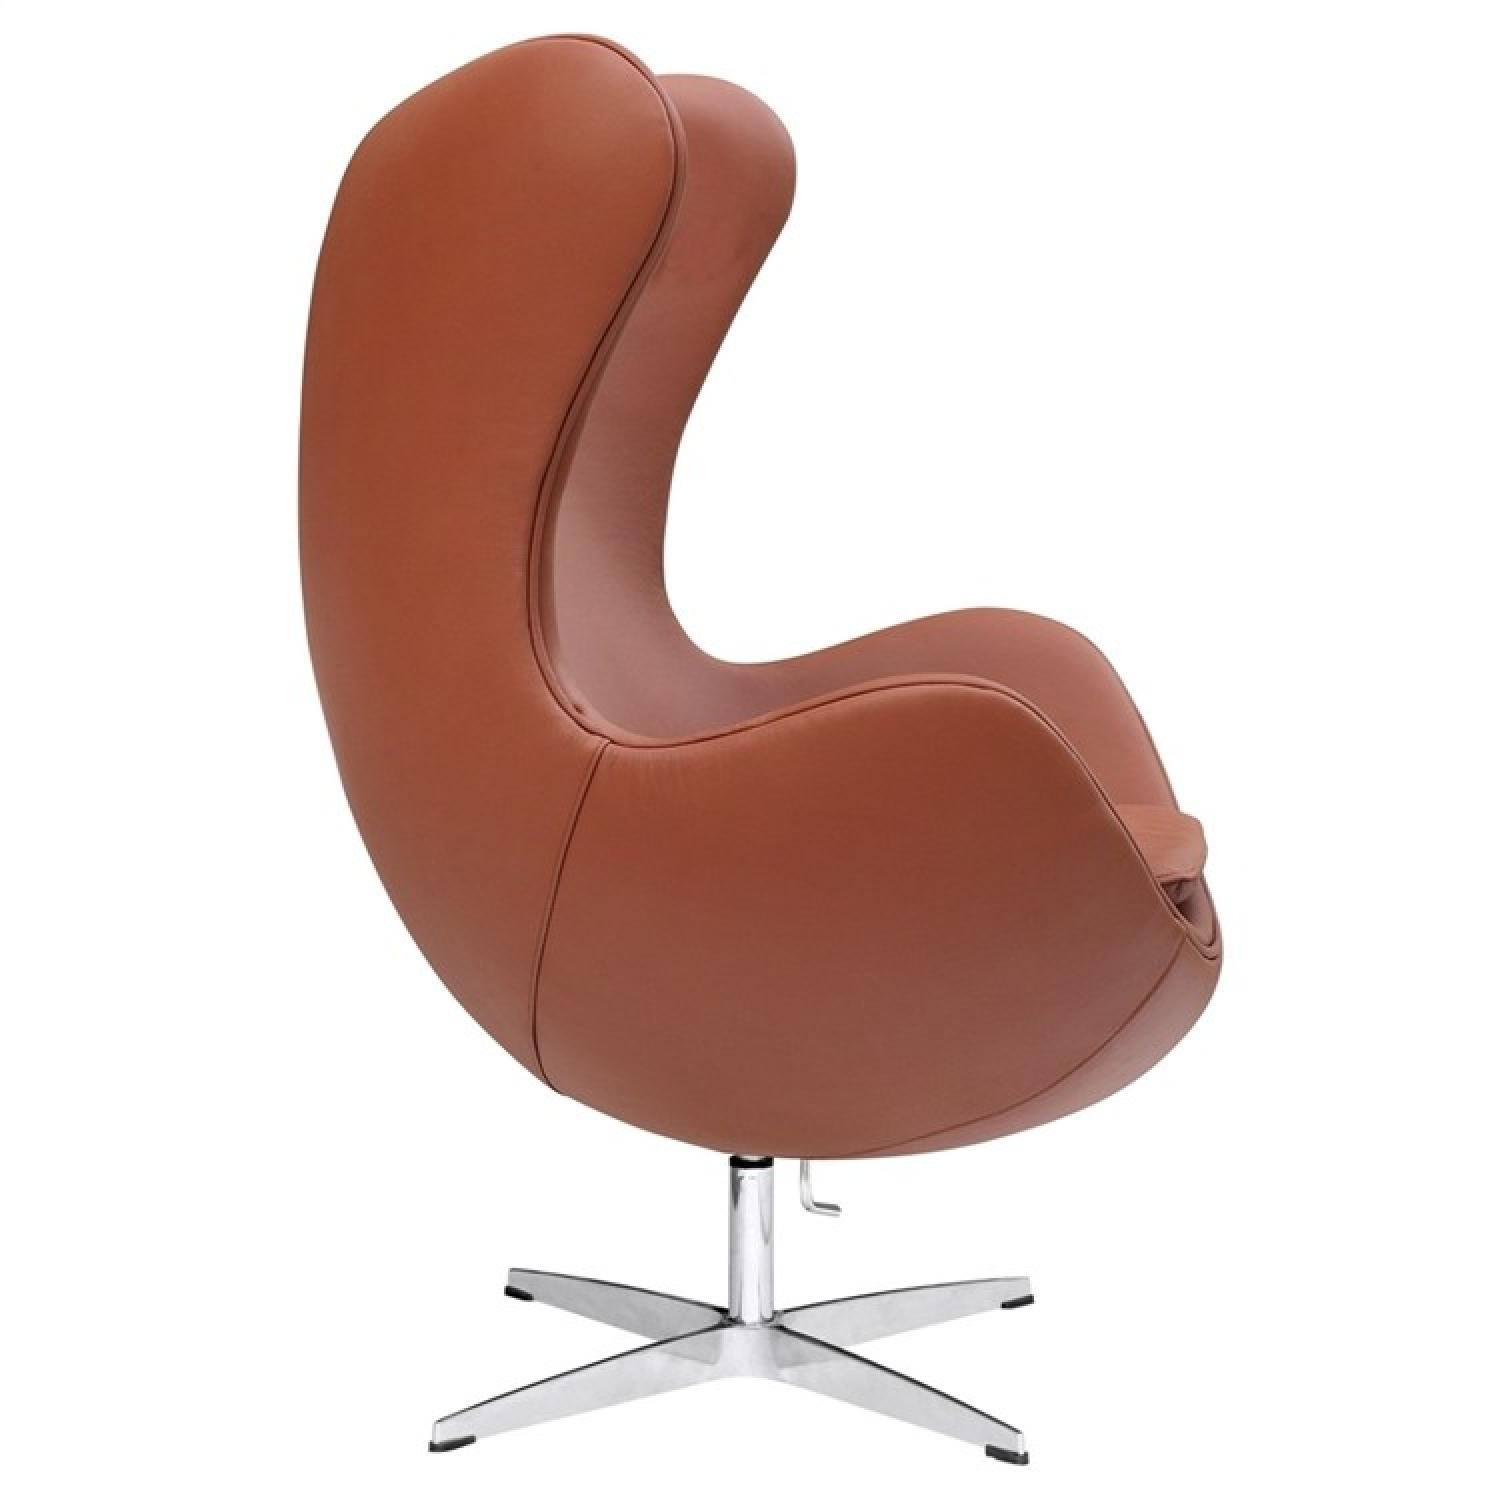 Mid-Century Style Egg Chair in Premium Light Brown Leather - image-1